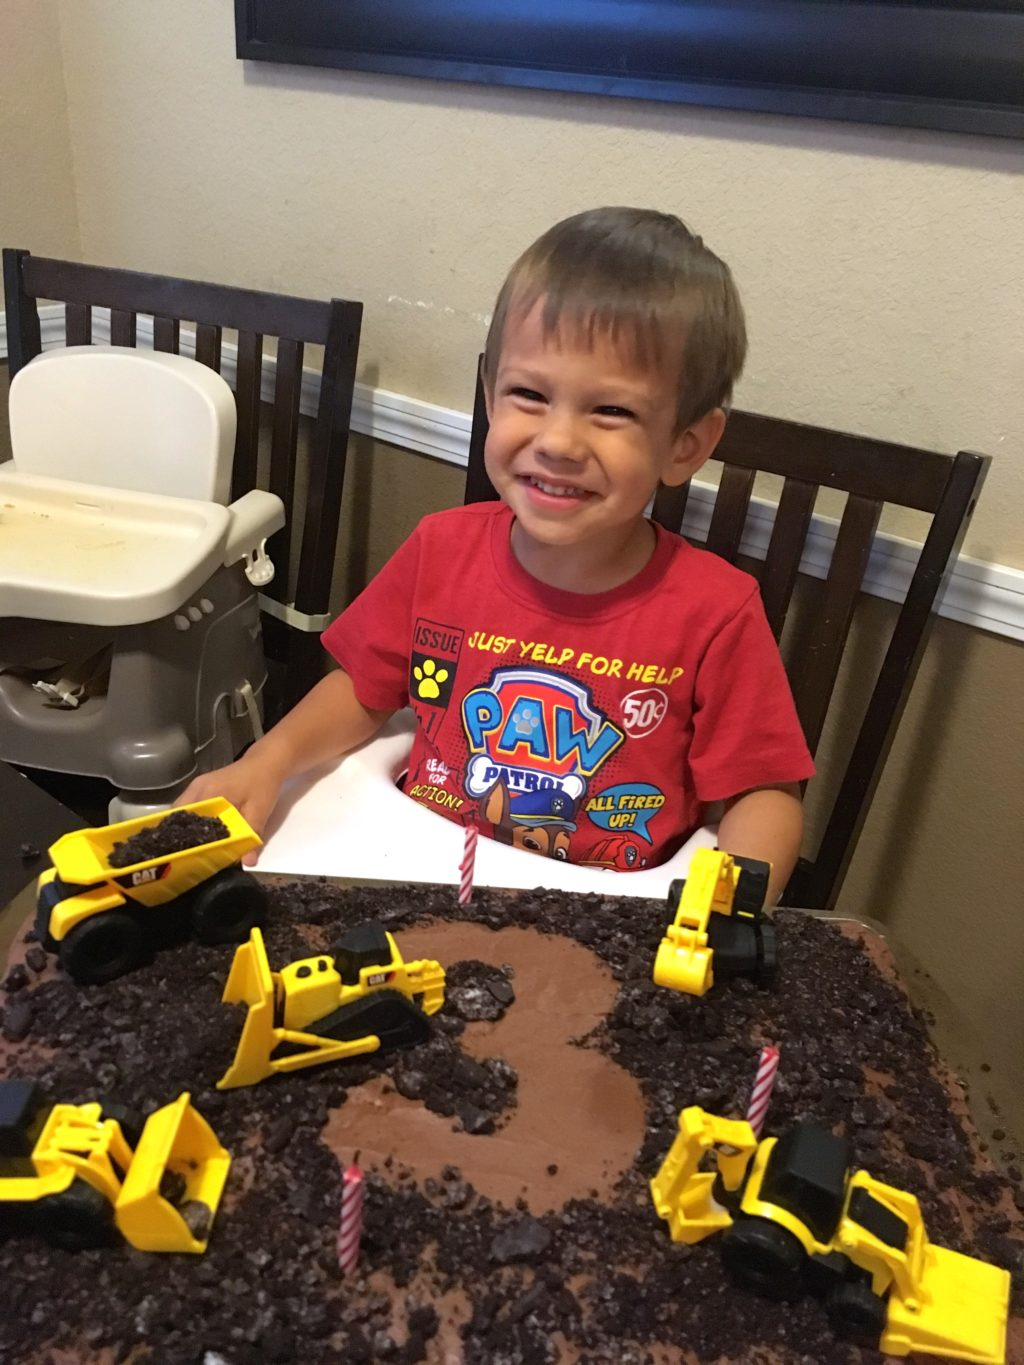 Child with 3 year birthday cake